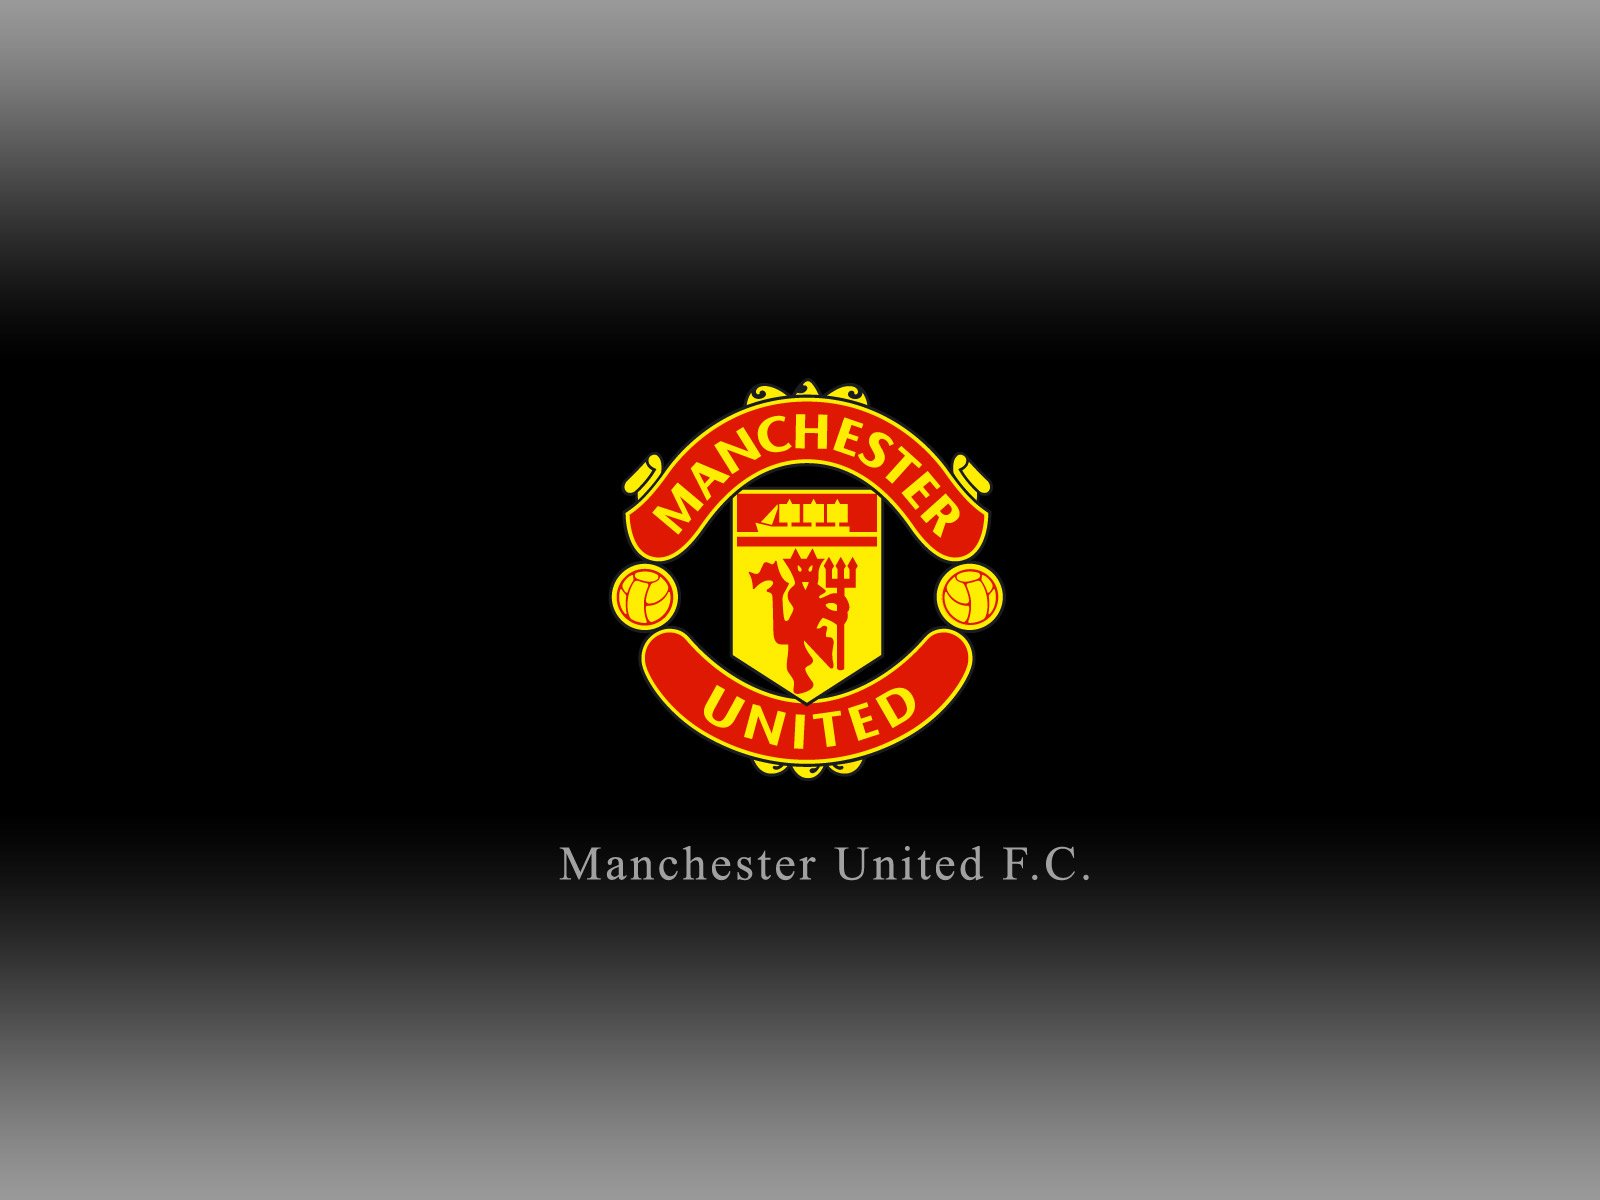 World Sports Hd Wallpapers: Manchester United Hd ...